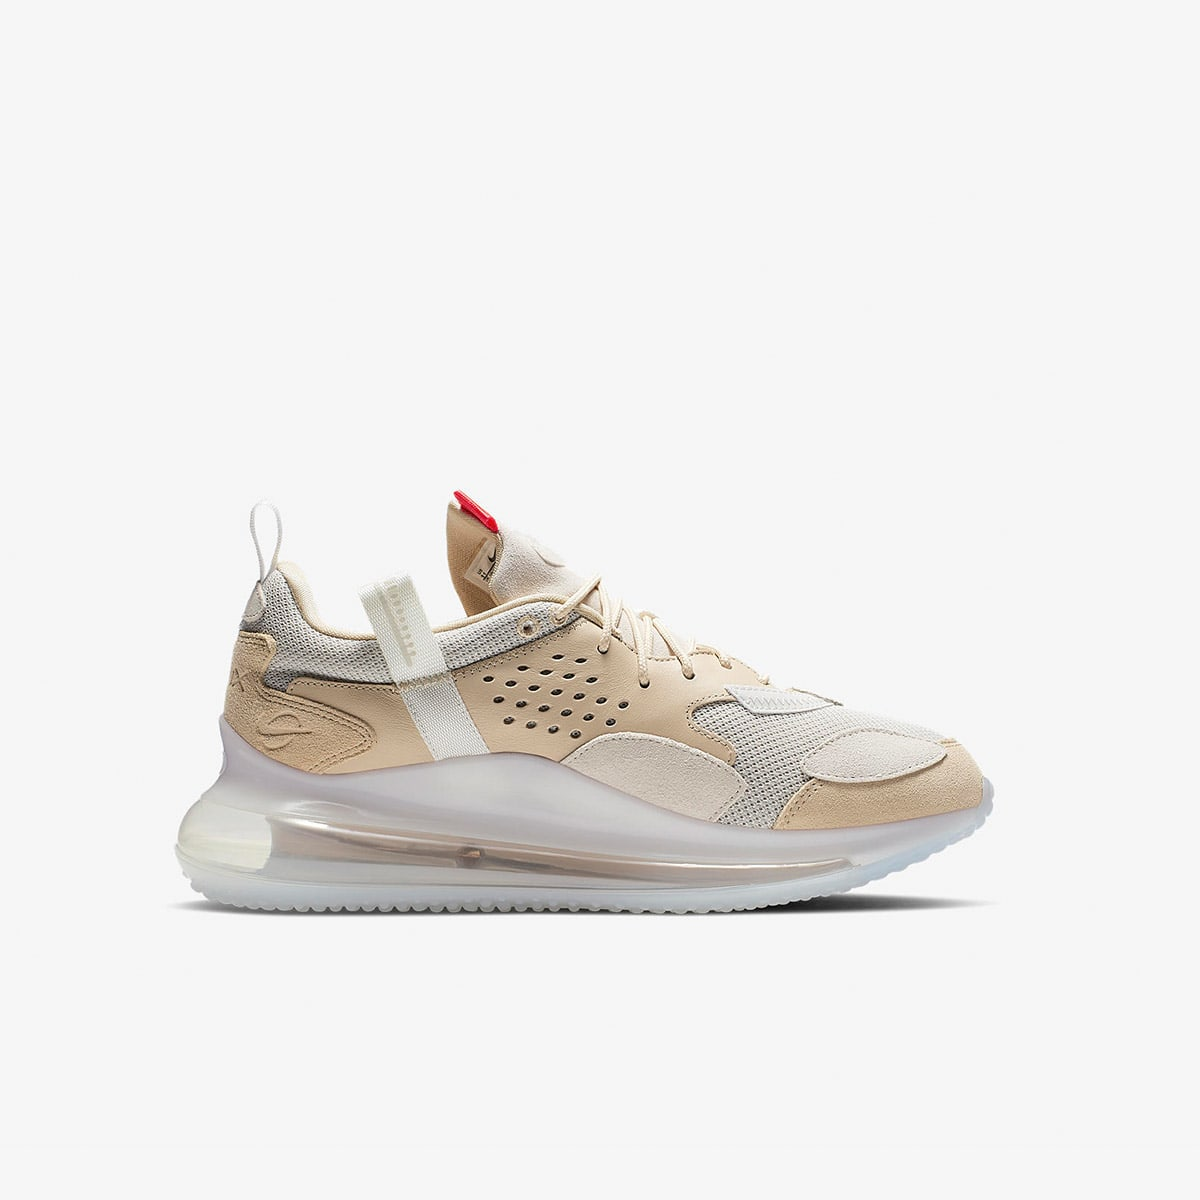 new styles c674b 03496 END. Features | Nike x Odell Beckham Jr Air Max 720 ...